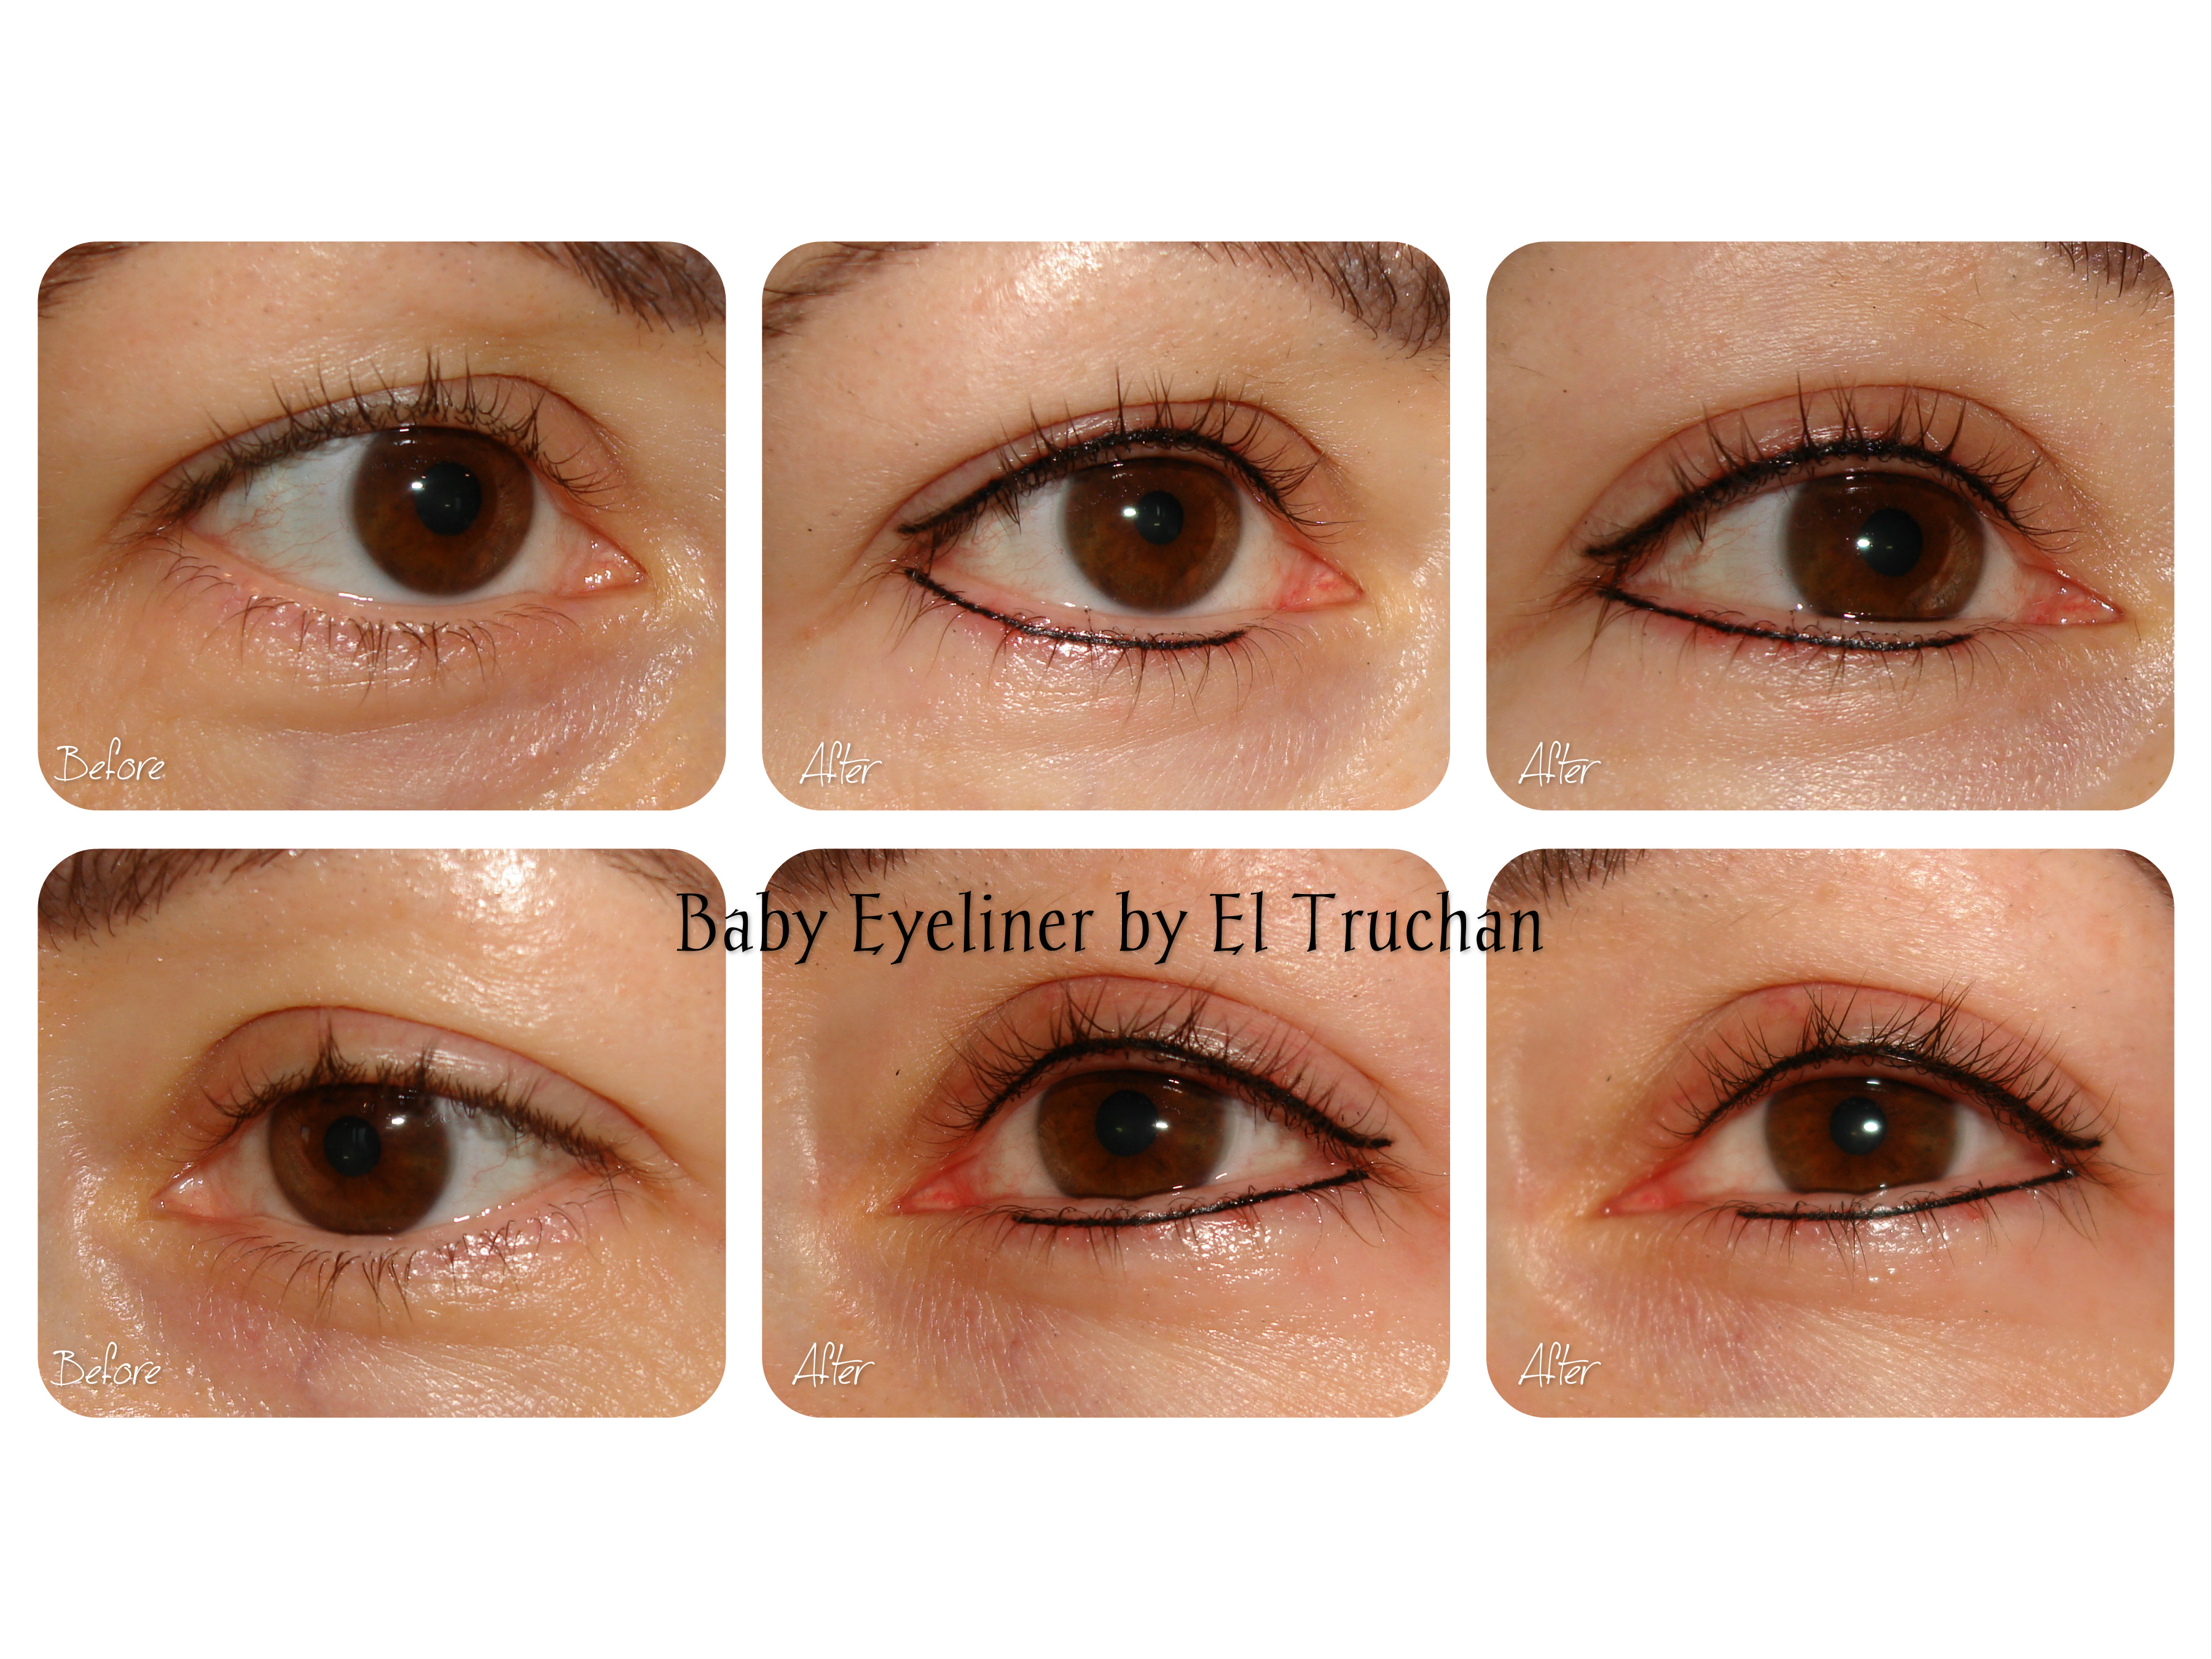 Baby Eyeliner semi permanent makeup by El Truchan